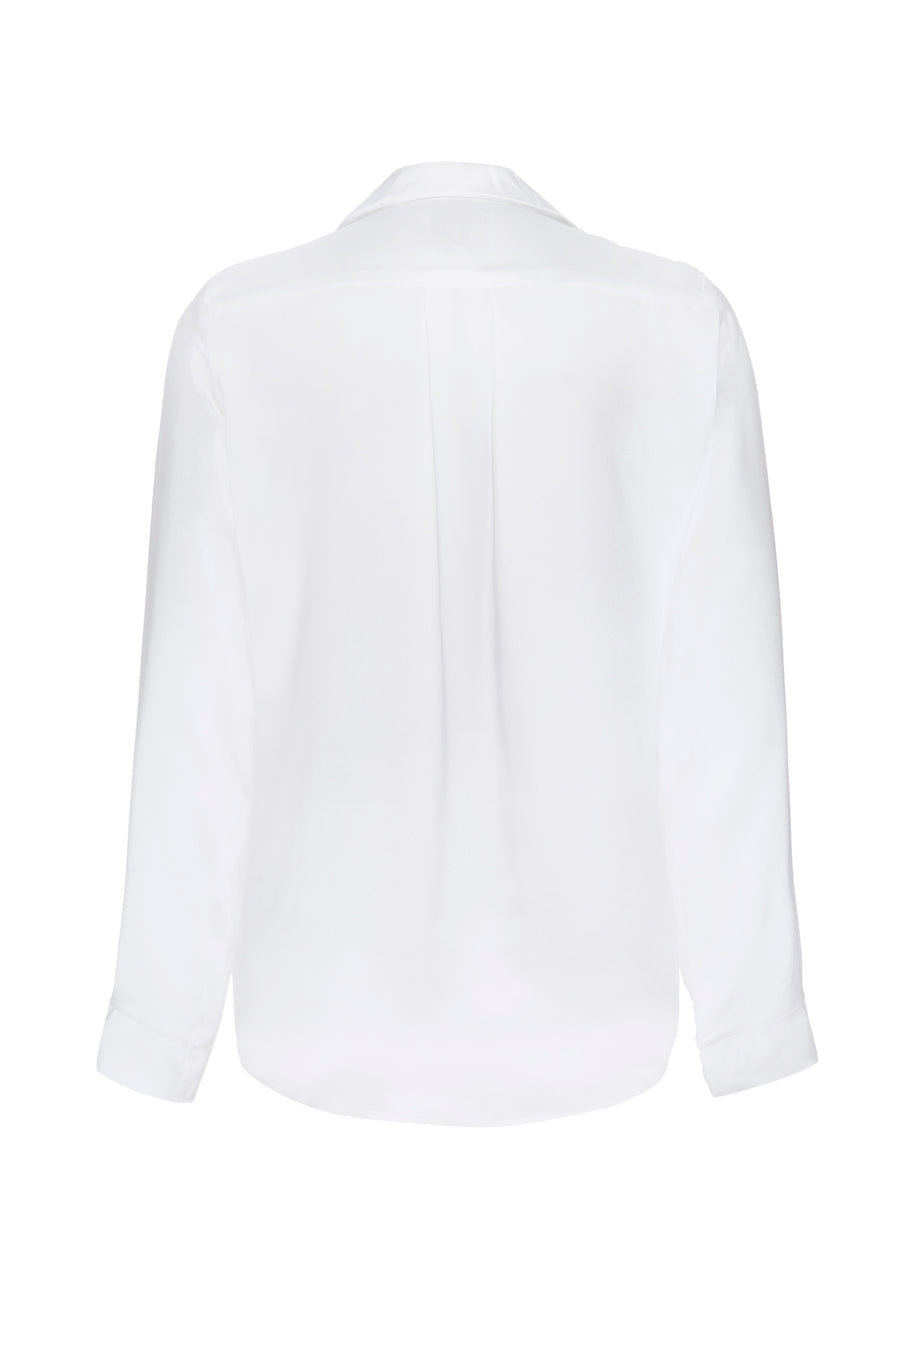 Silk Charmeuse Long Sleeved Top: Ivory